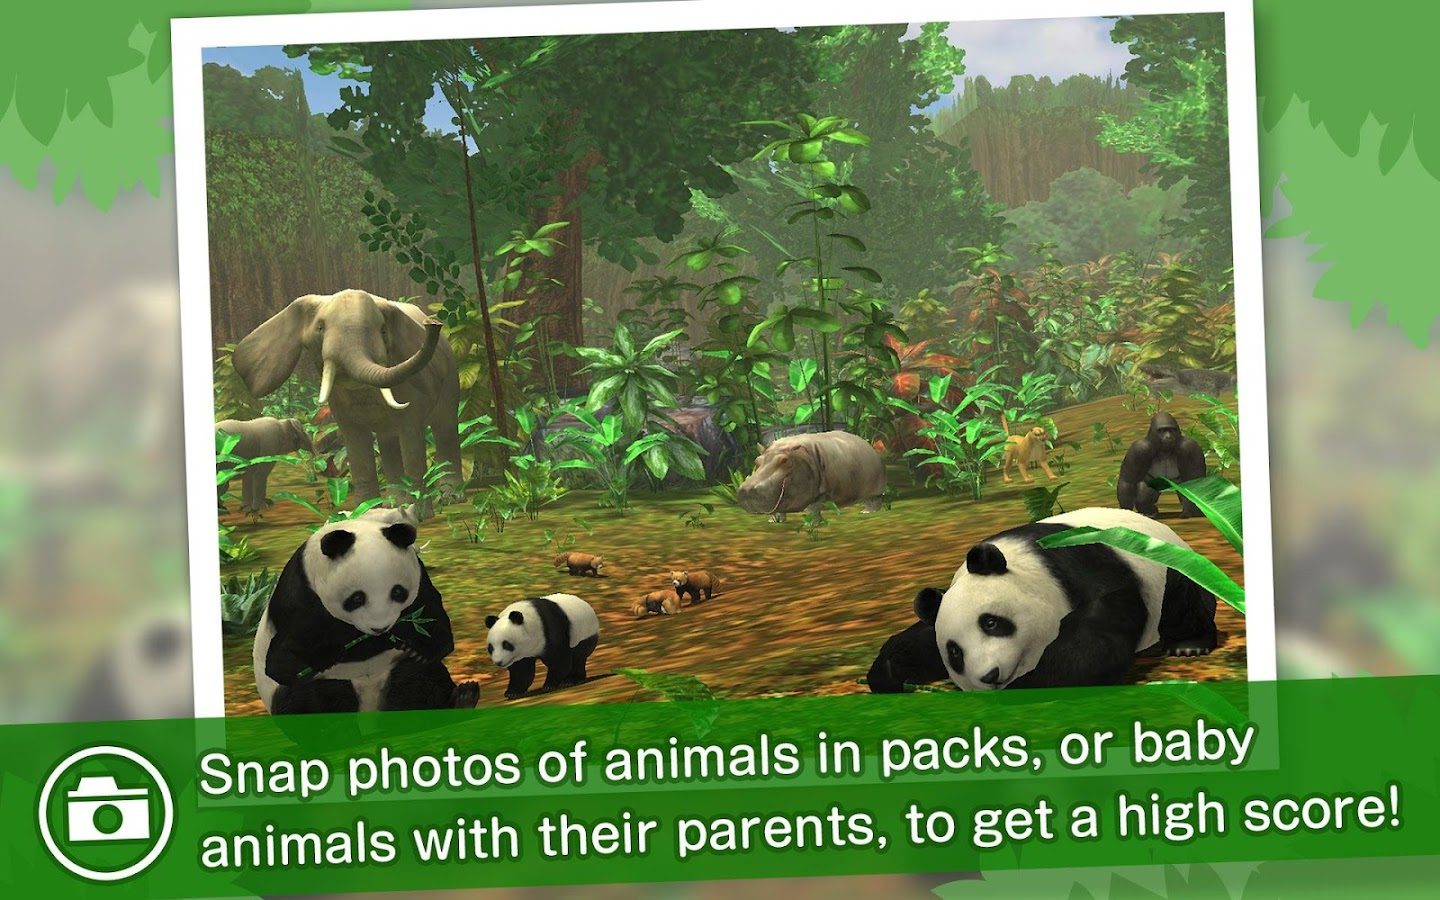 RealSafari - Find the animal- screenshot